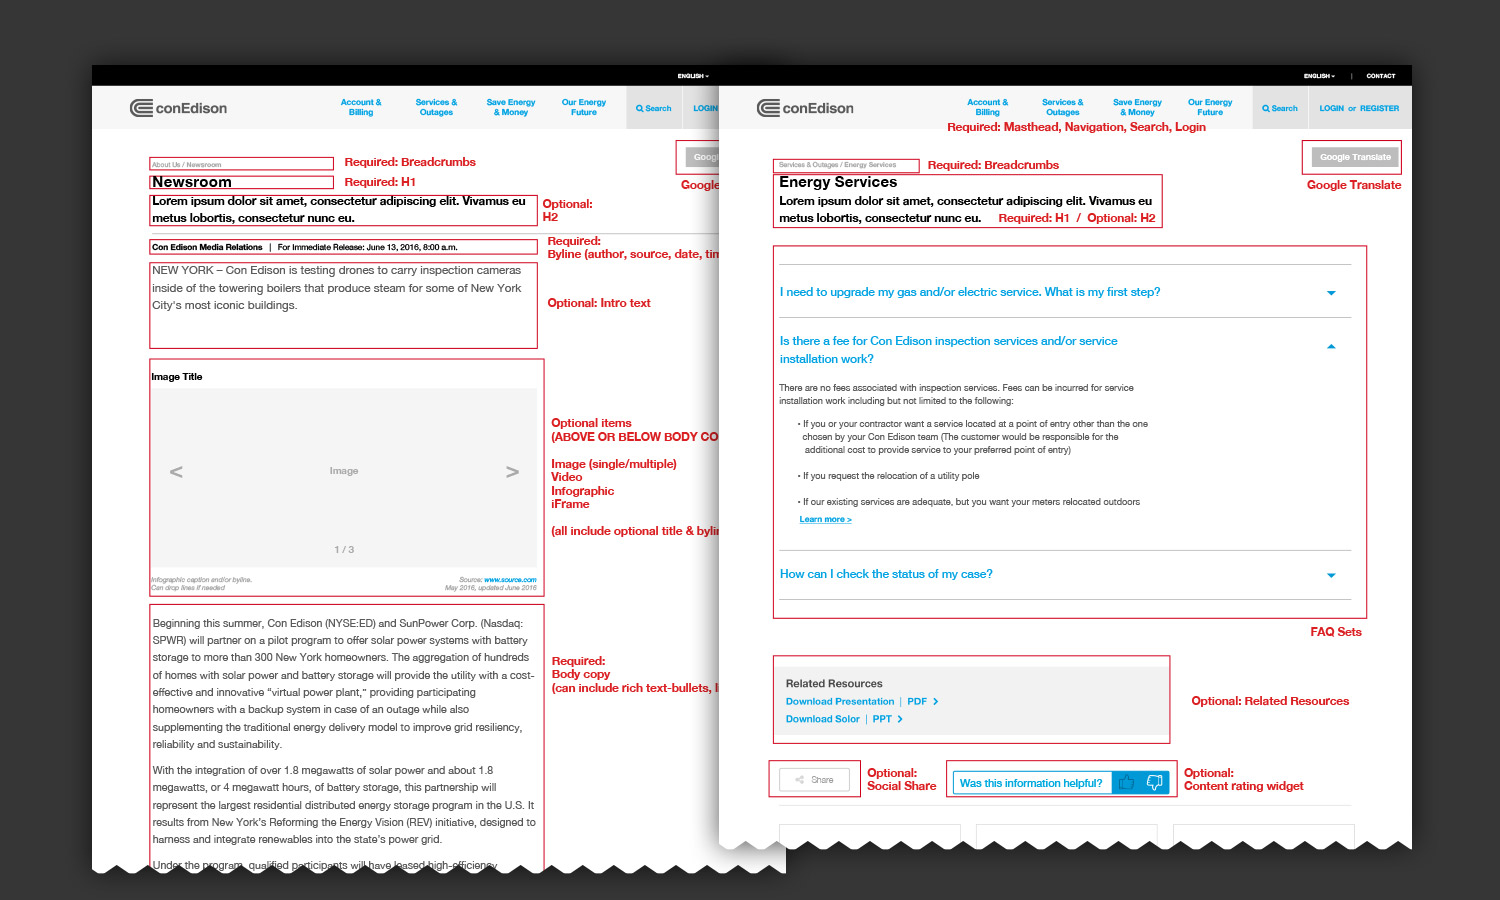 2 of 8 Templates Created for ConEd.com (Press Release Template and FAQ Template)